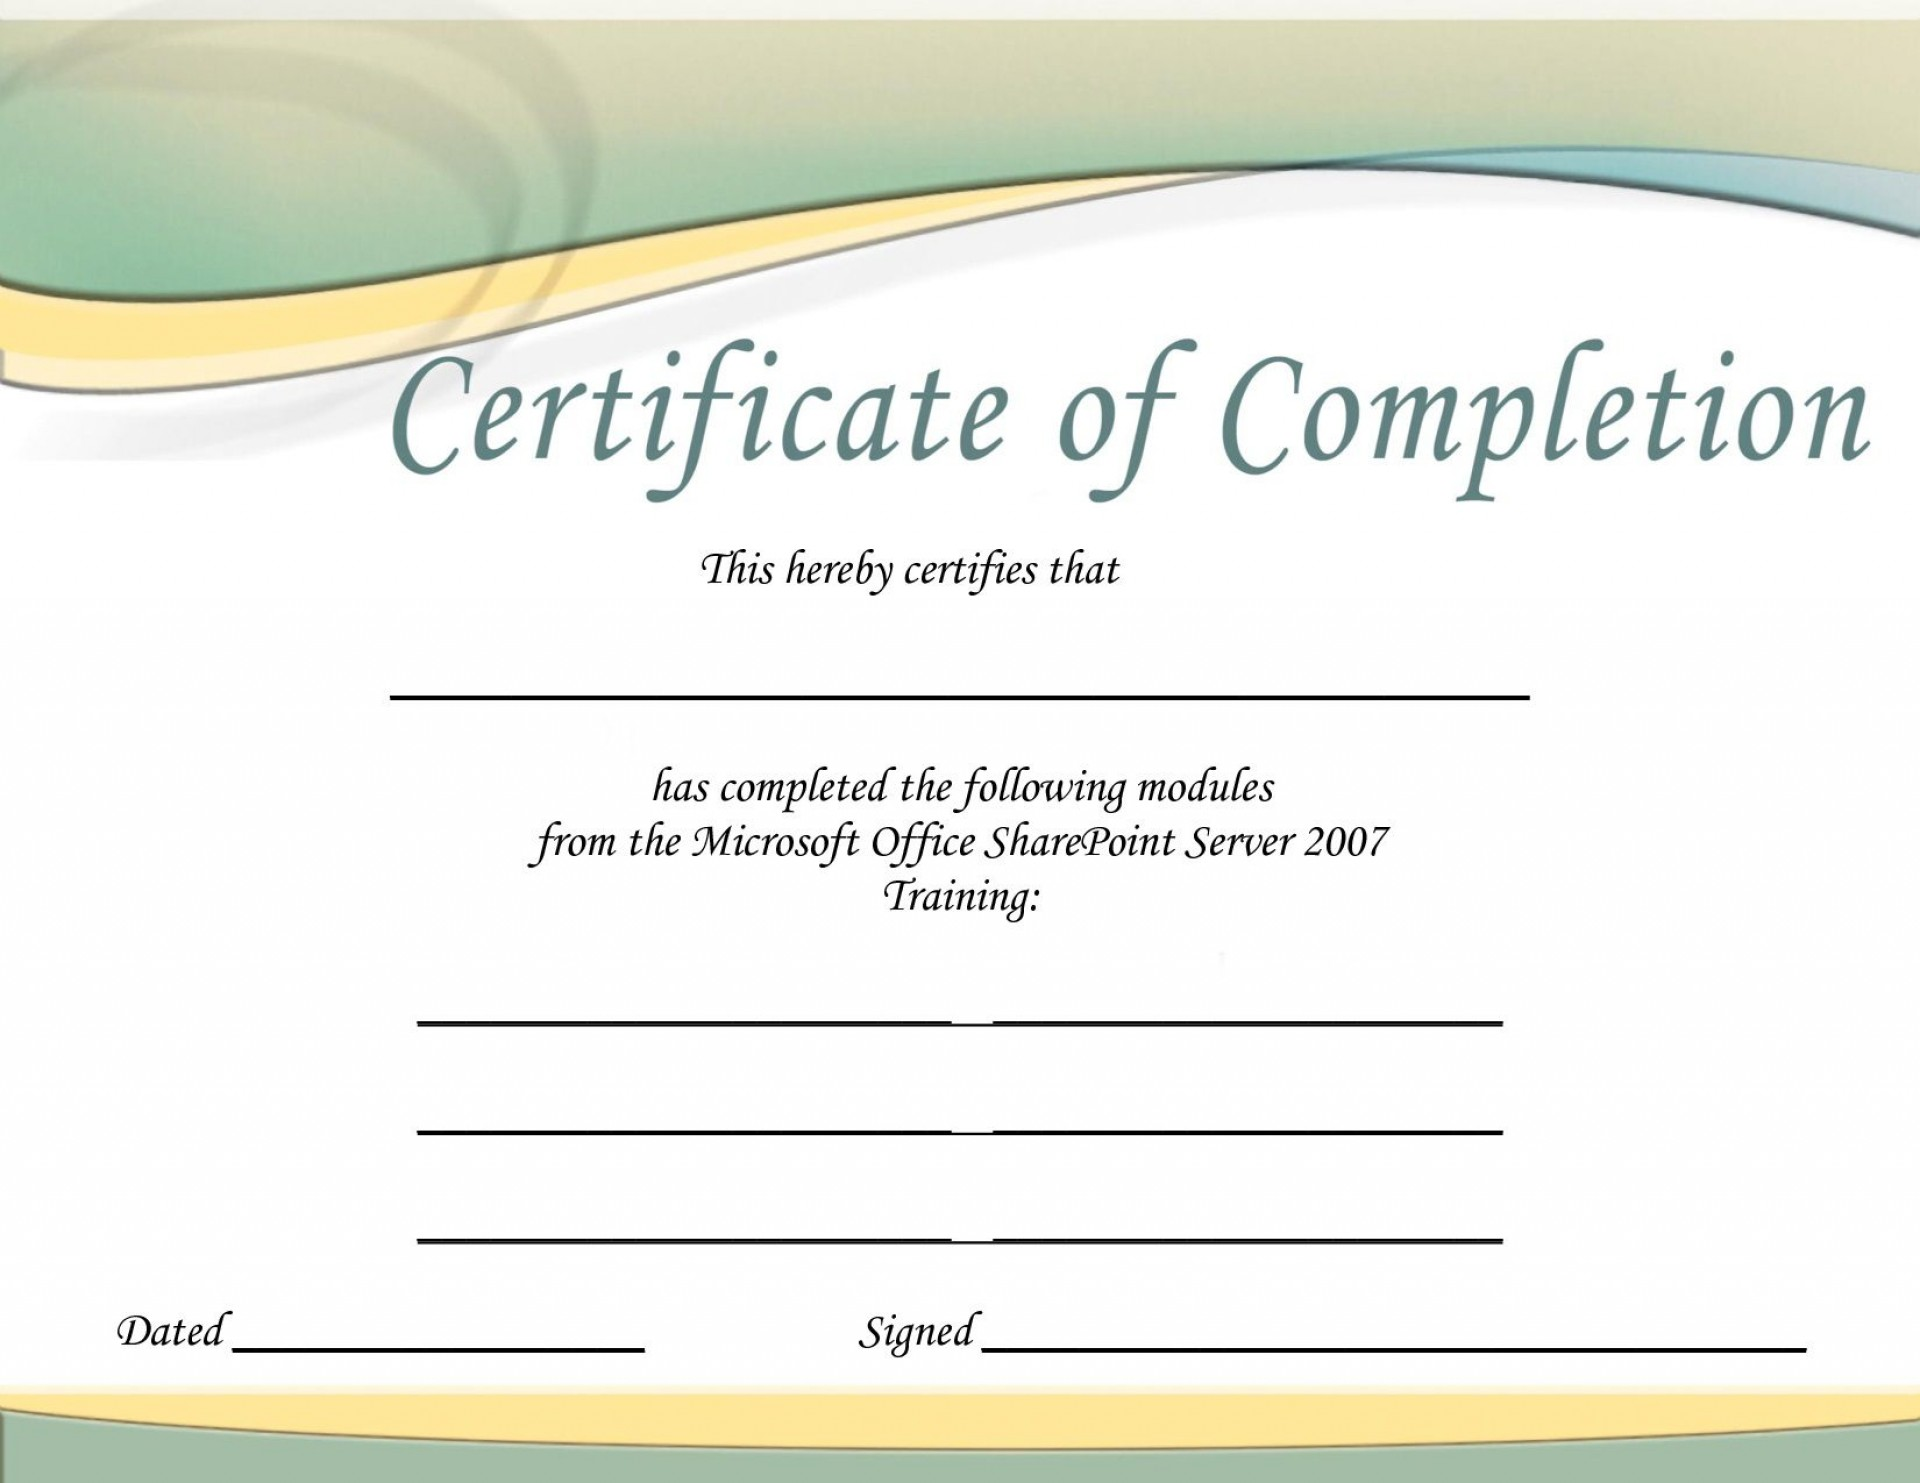 008 Fearsome Training Certificate Template Free Idea  Computer Download Golf Course Gift Word1920